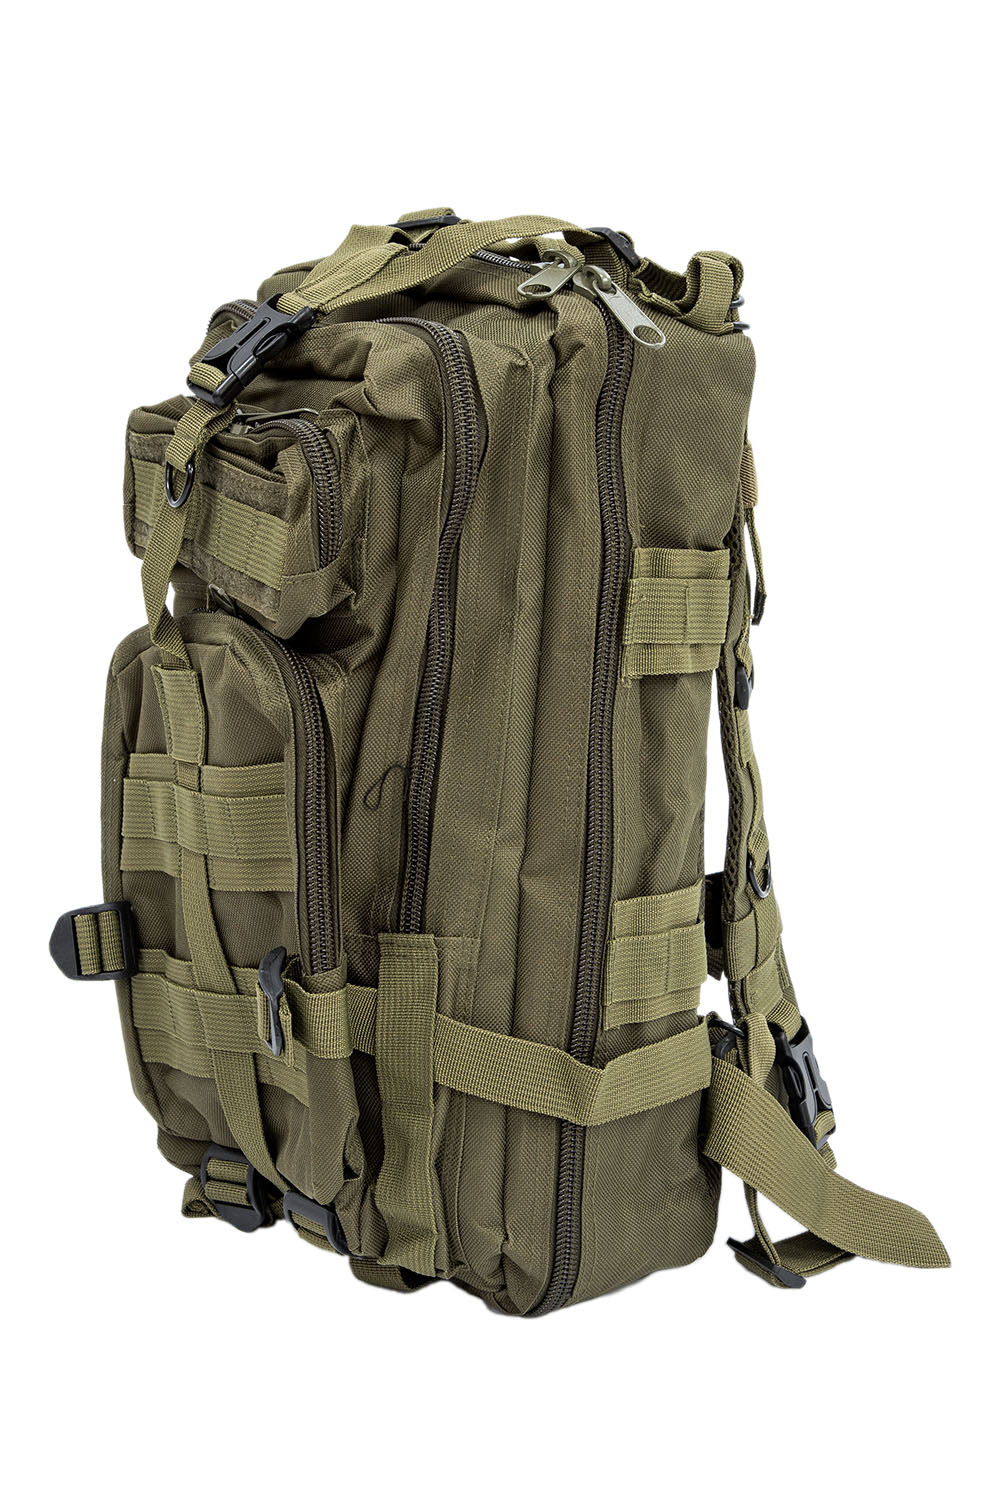 Men Outdoor backpack - Men Outdoor backpack Military Tactical Backpack Camping Hiking Hunting Trekking Backpack